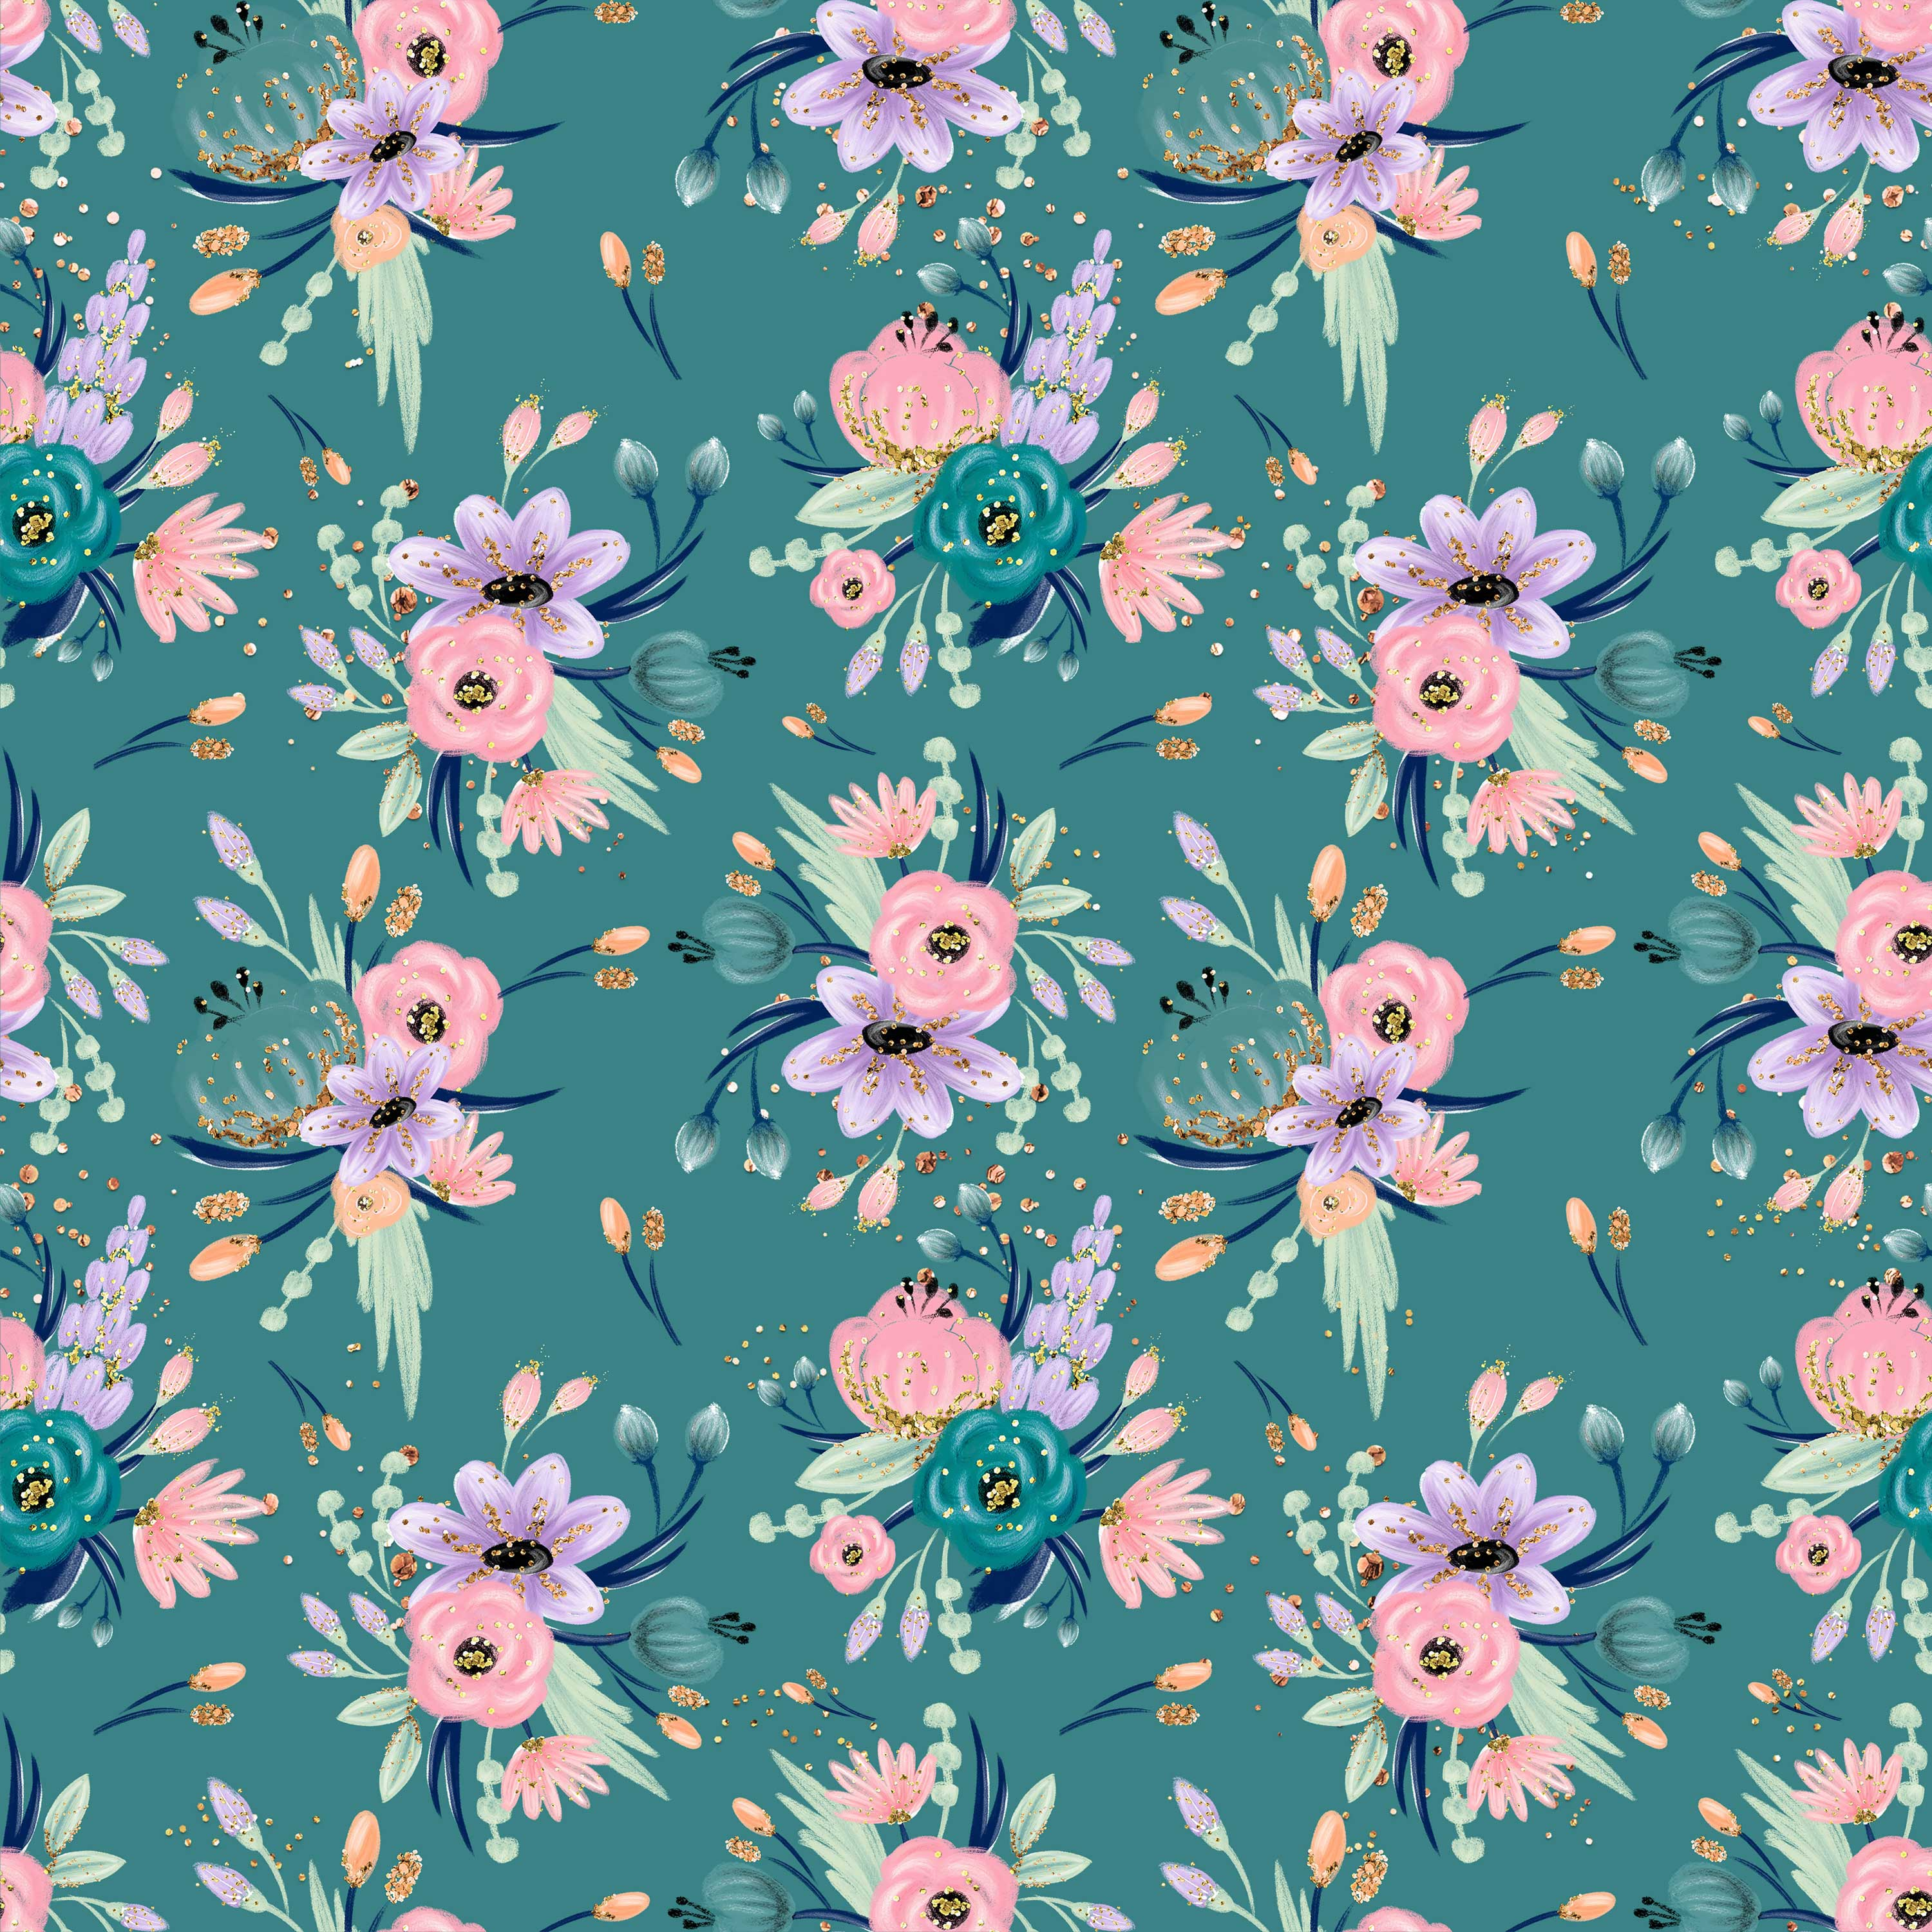 Pastel Flowers on Turquoise  - Jersey Knit